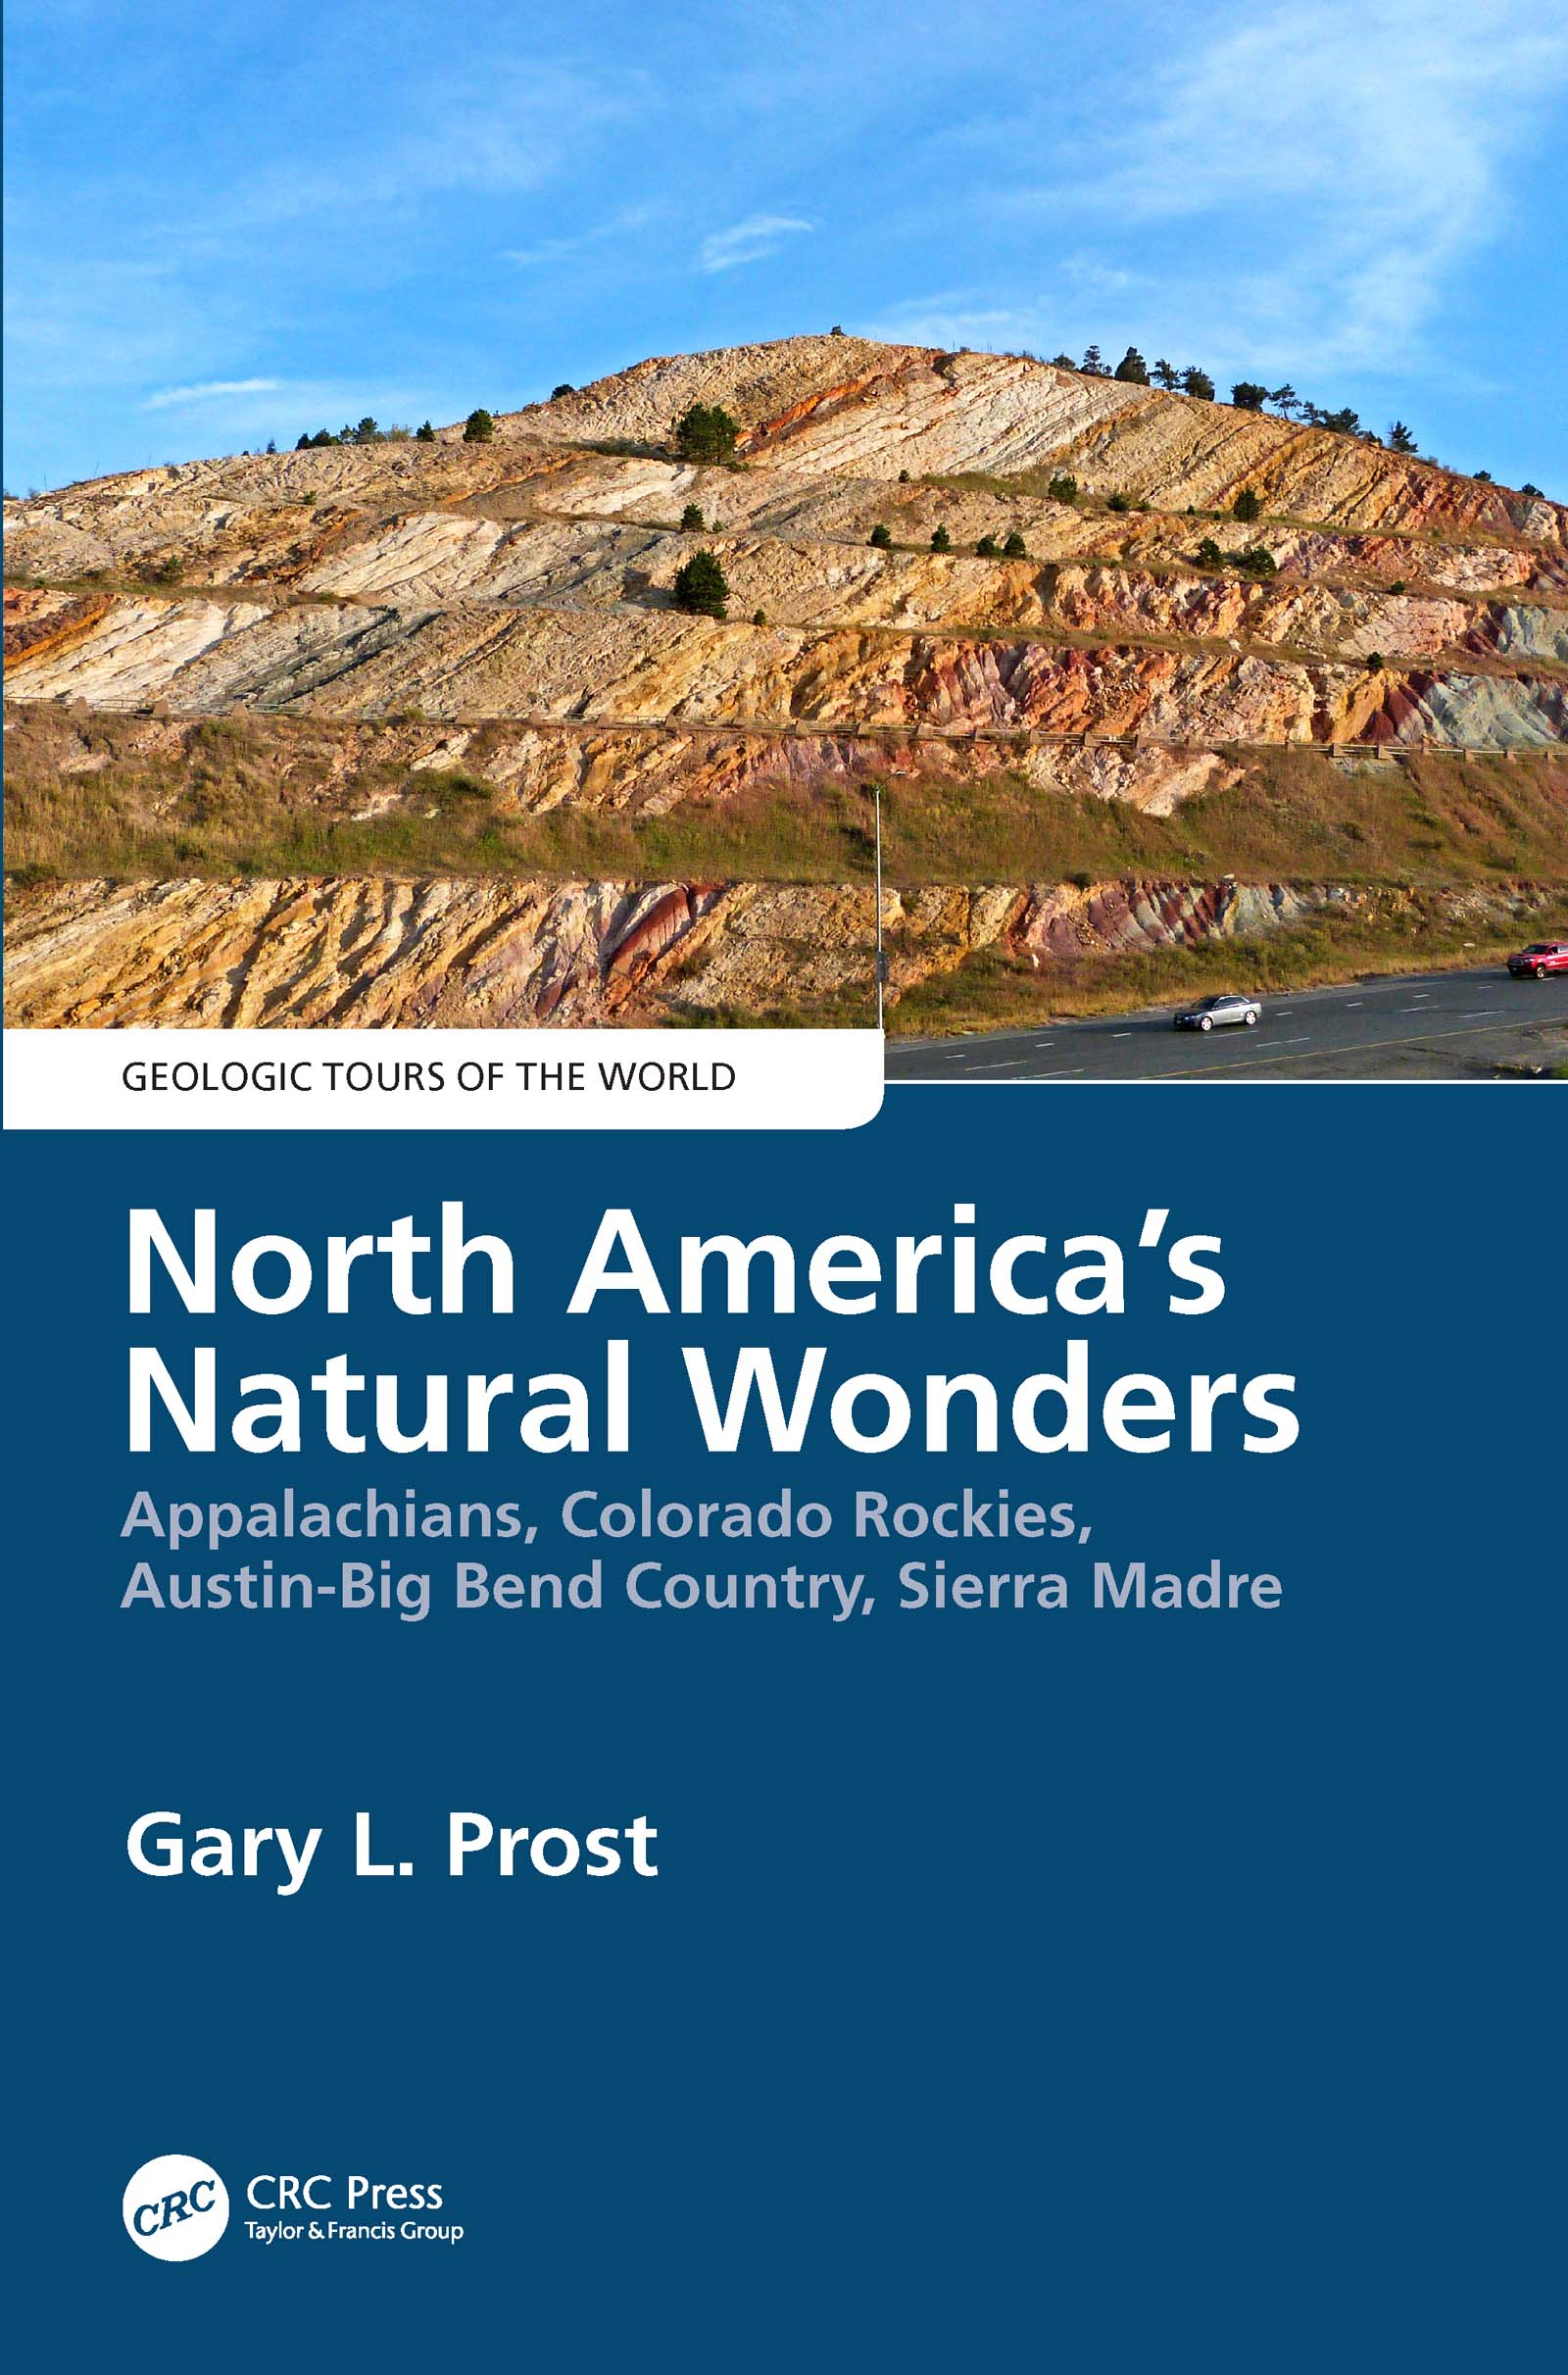 North America's Natural Wonders: Appalachians, Colorado Rockies, Austin-Big Bend Country, Sierra Madre book cover